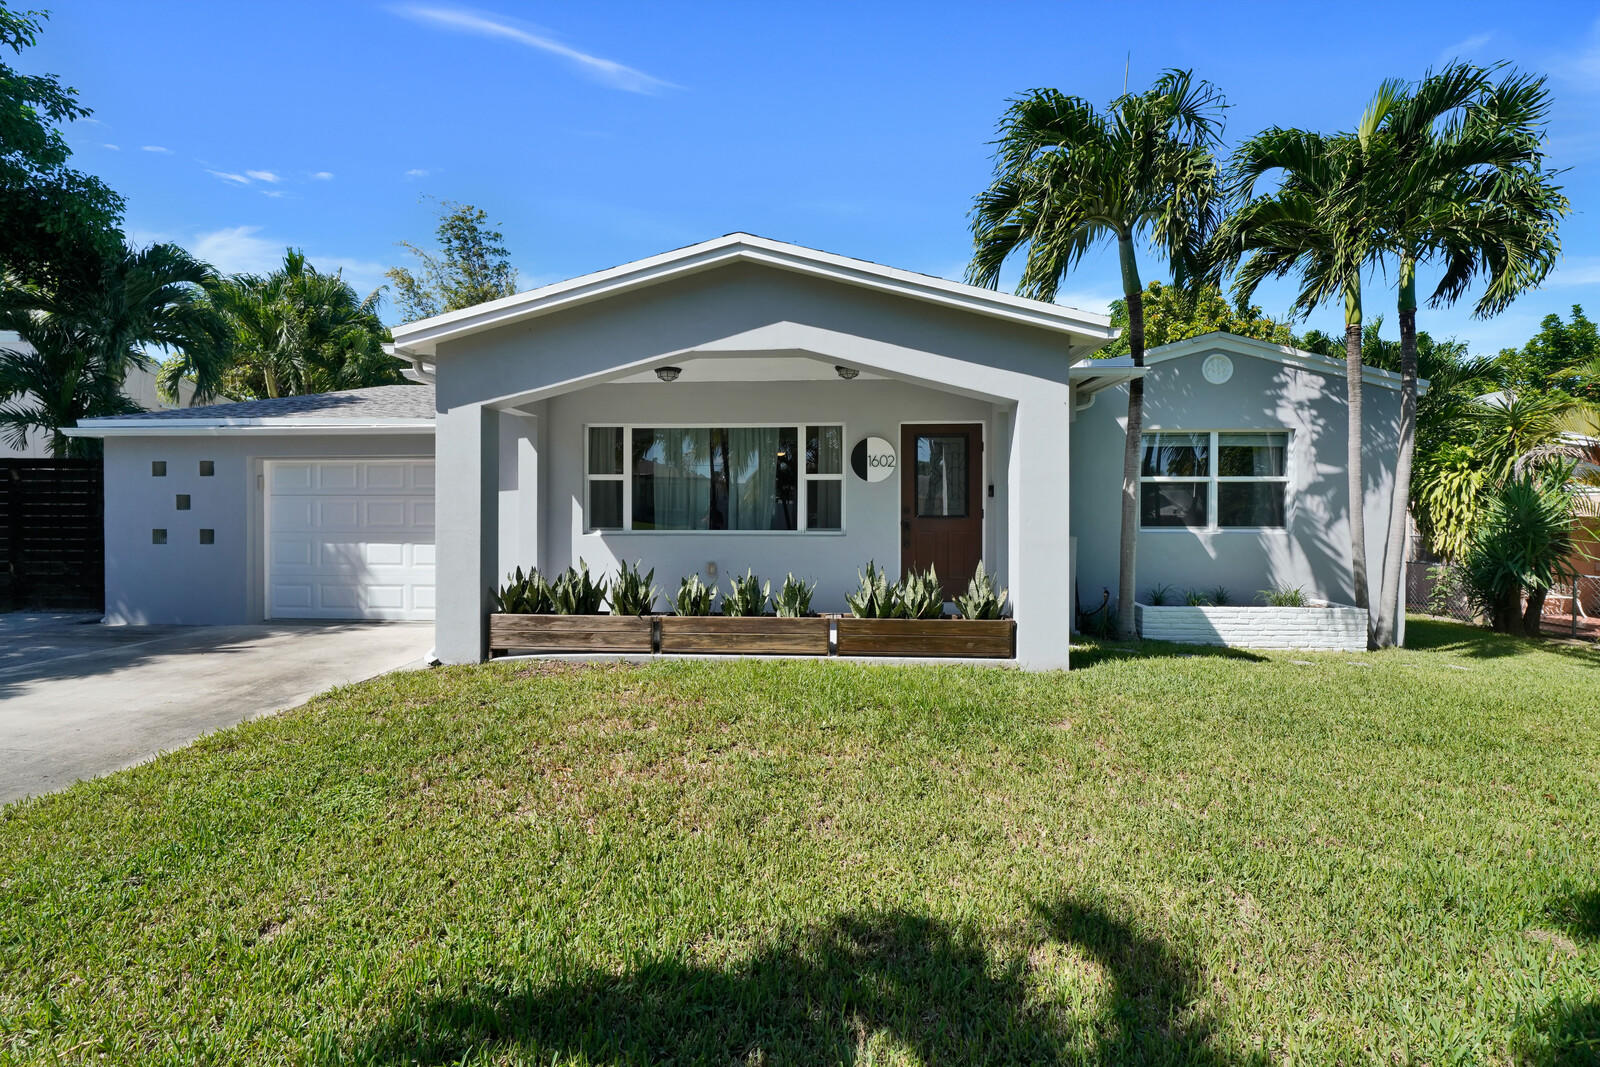 Home for sale in Crestwood Lake Worth Florida